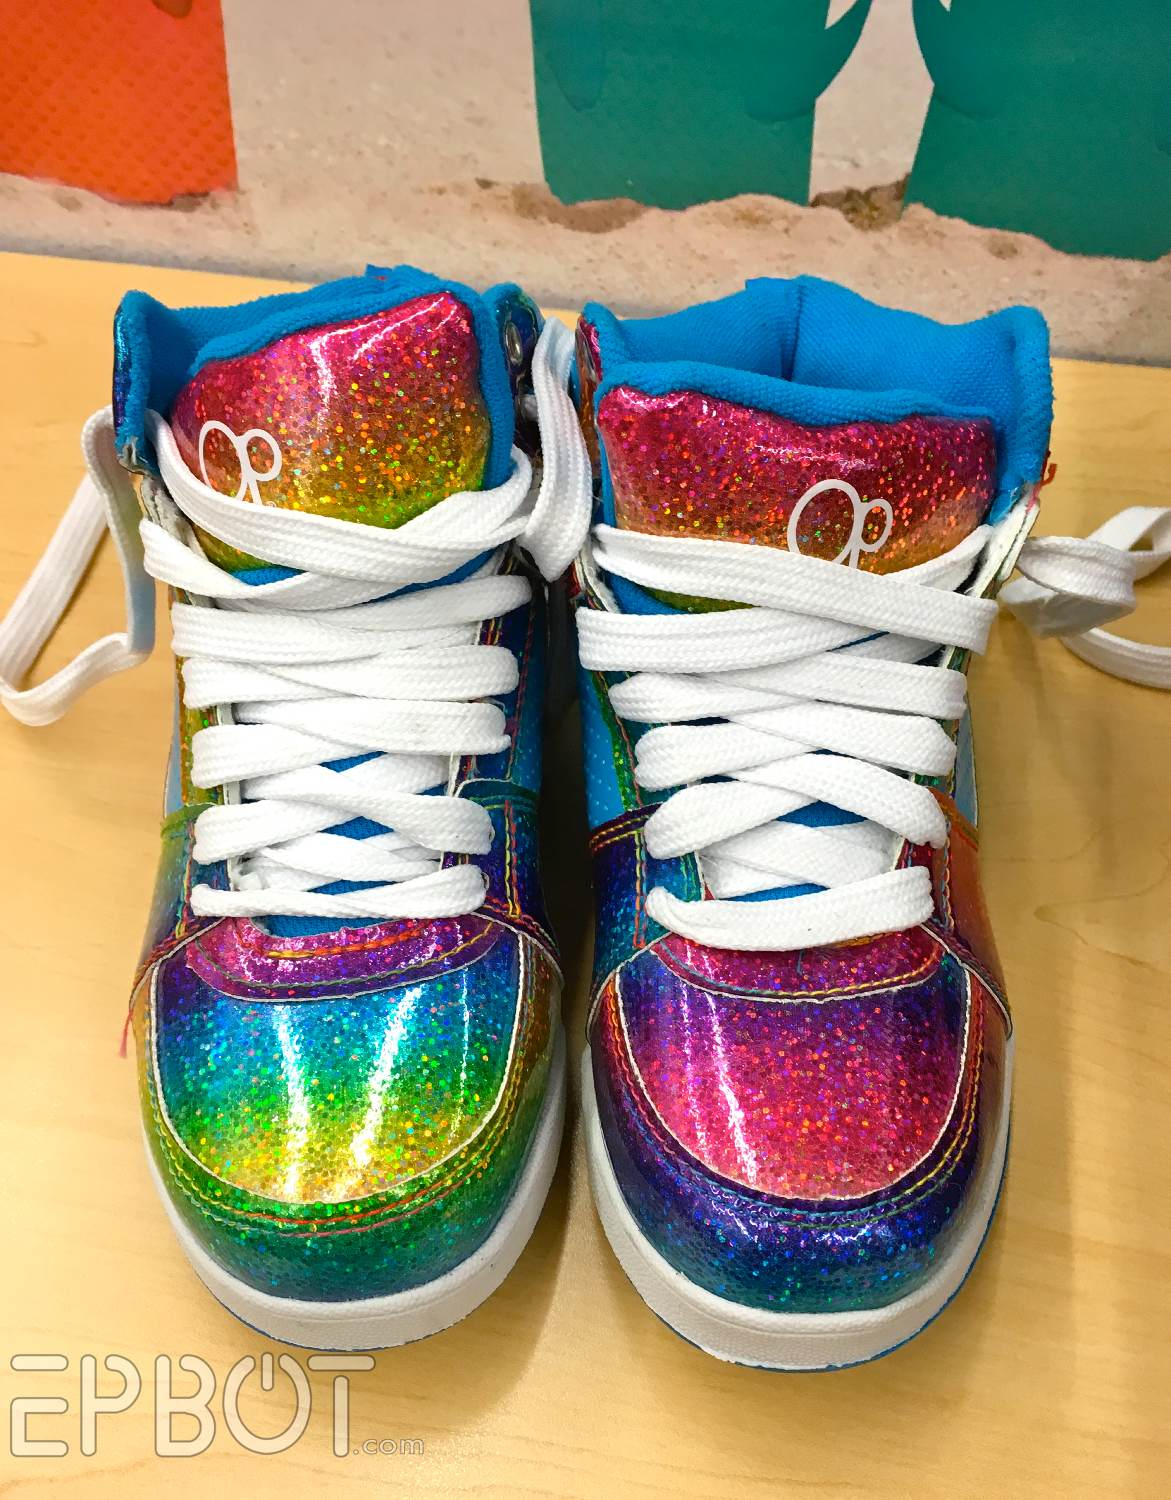 epbot the most beautiful shoes in the world